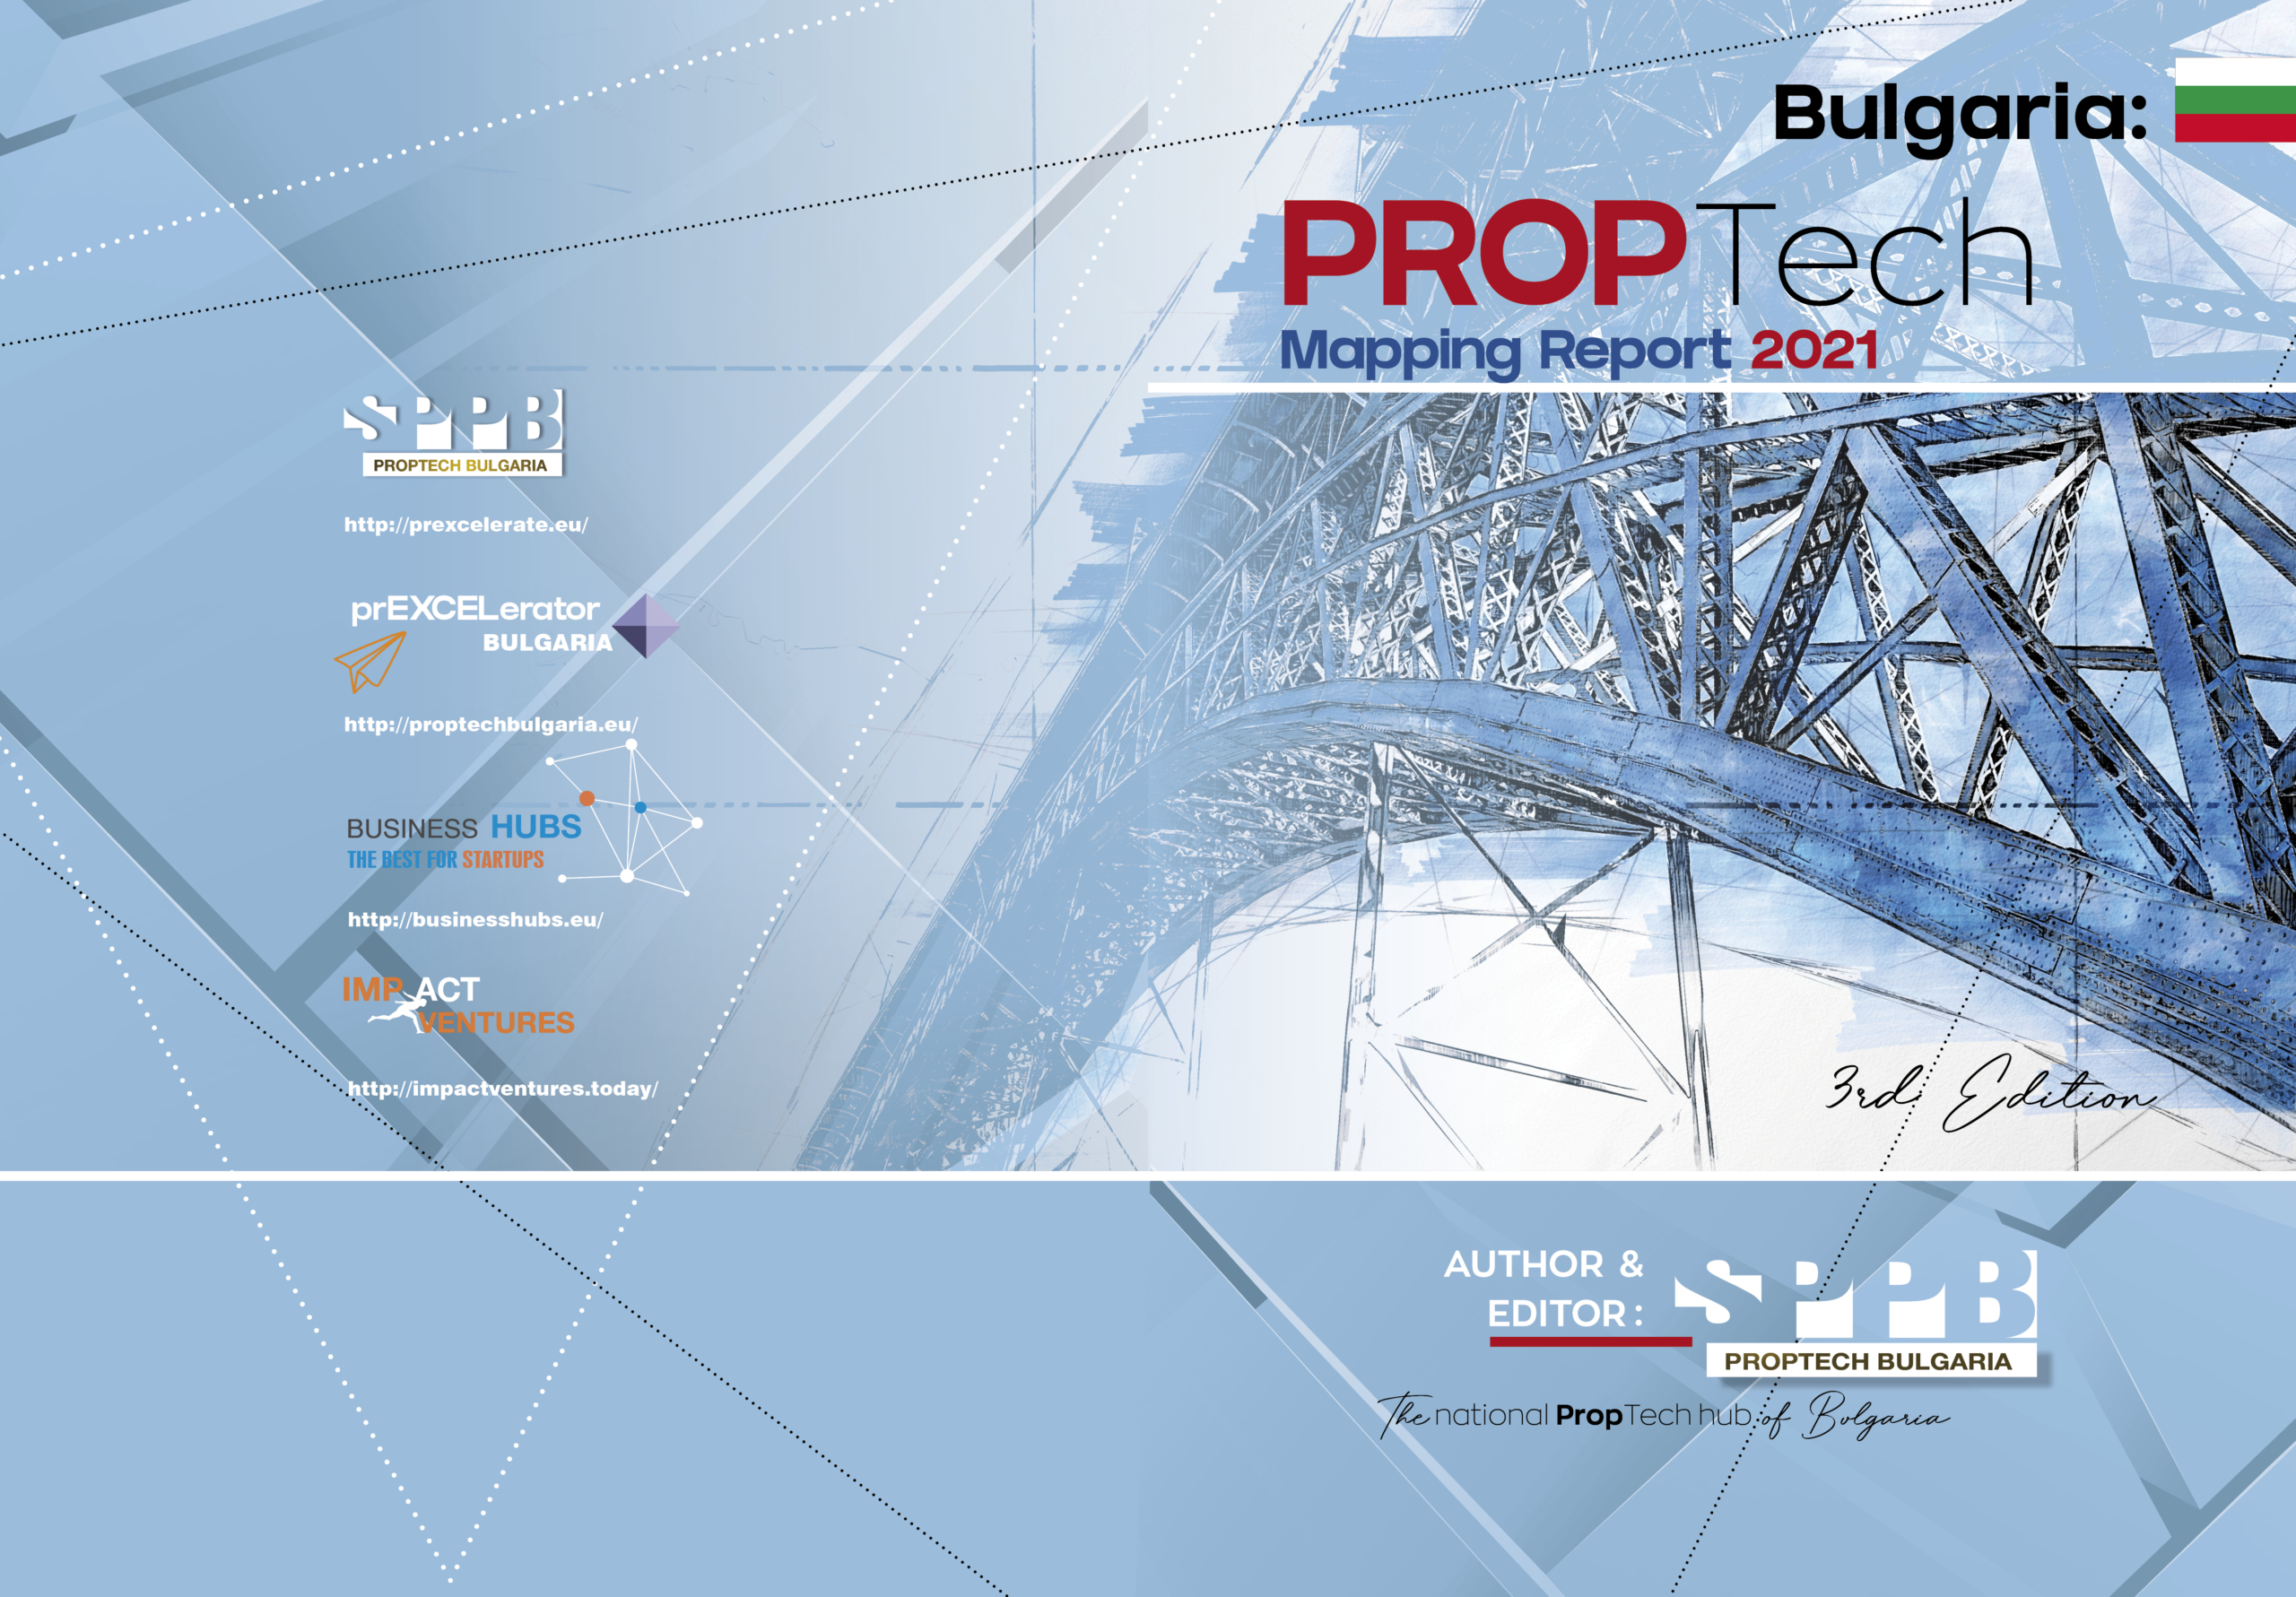 Press release | 3rd edition of BULGARIA: PropTech Mapping Report 2021